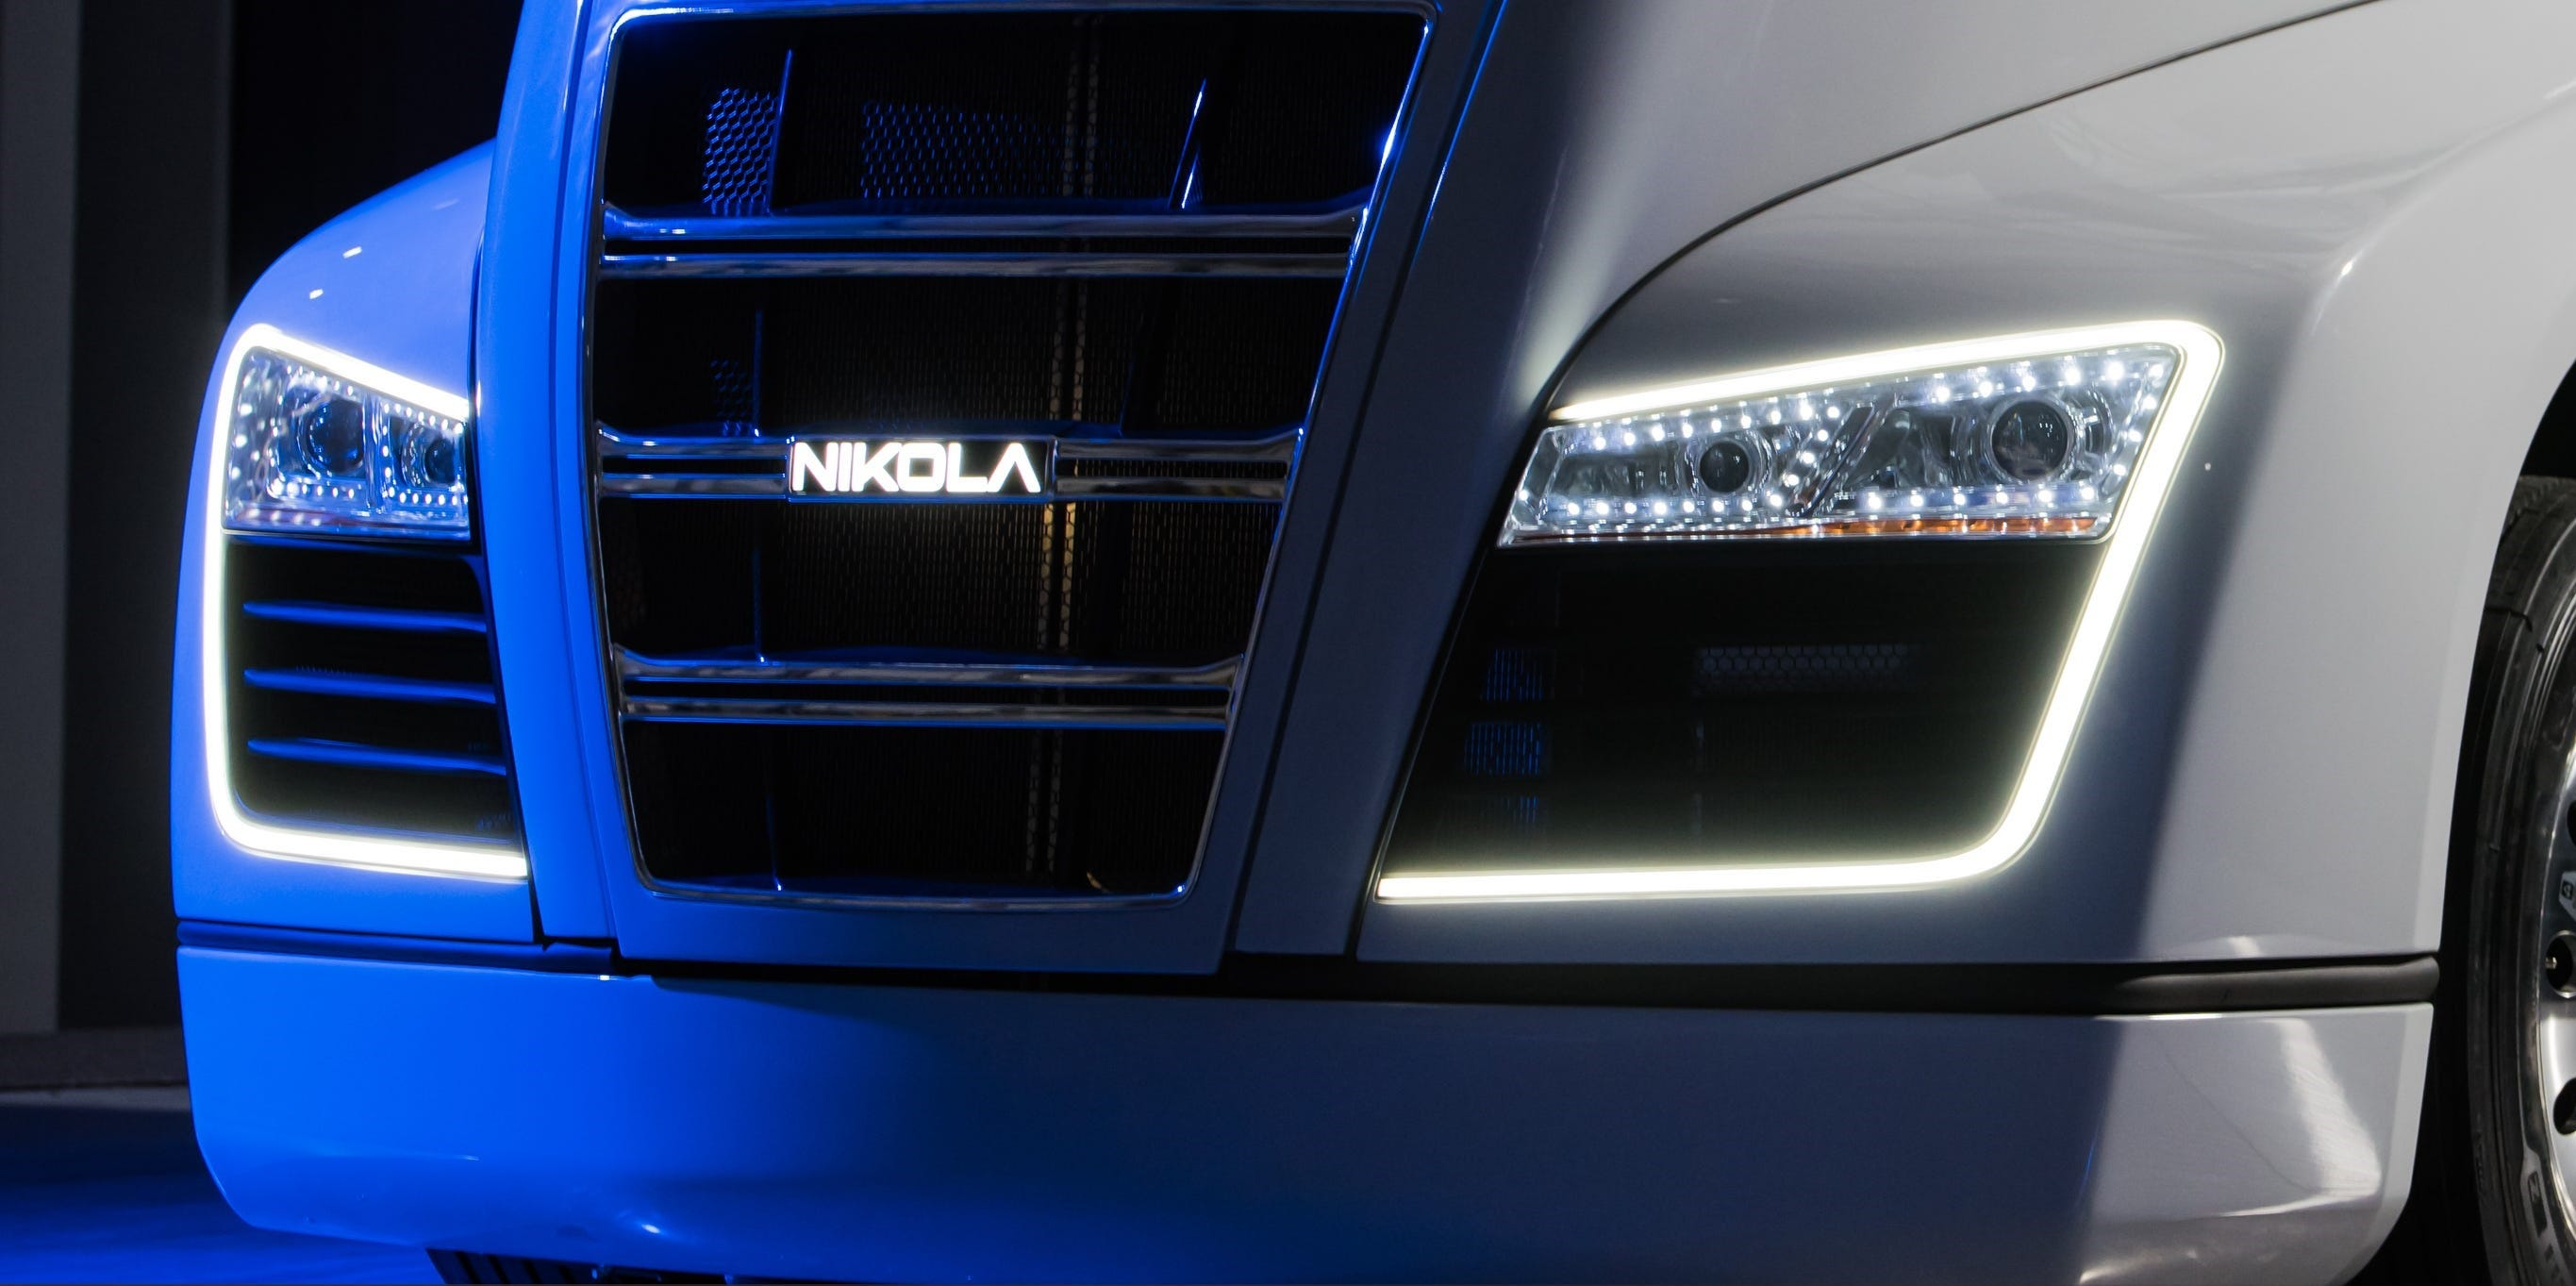 Fraud accusations rock vehicle maker Nikola Corp.